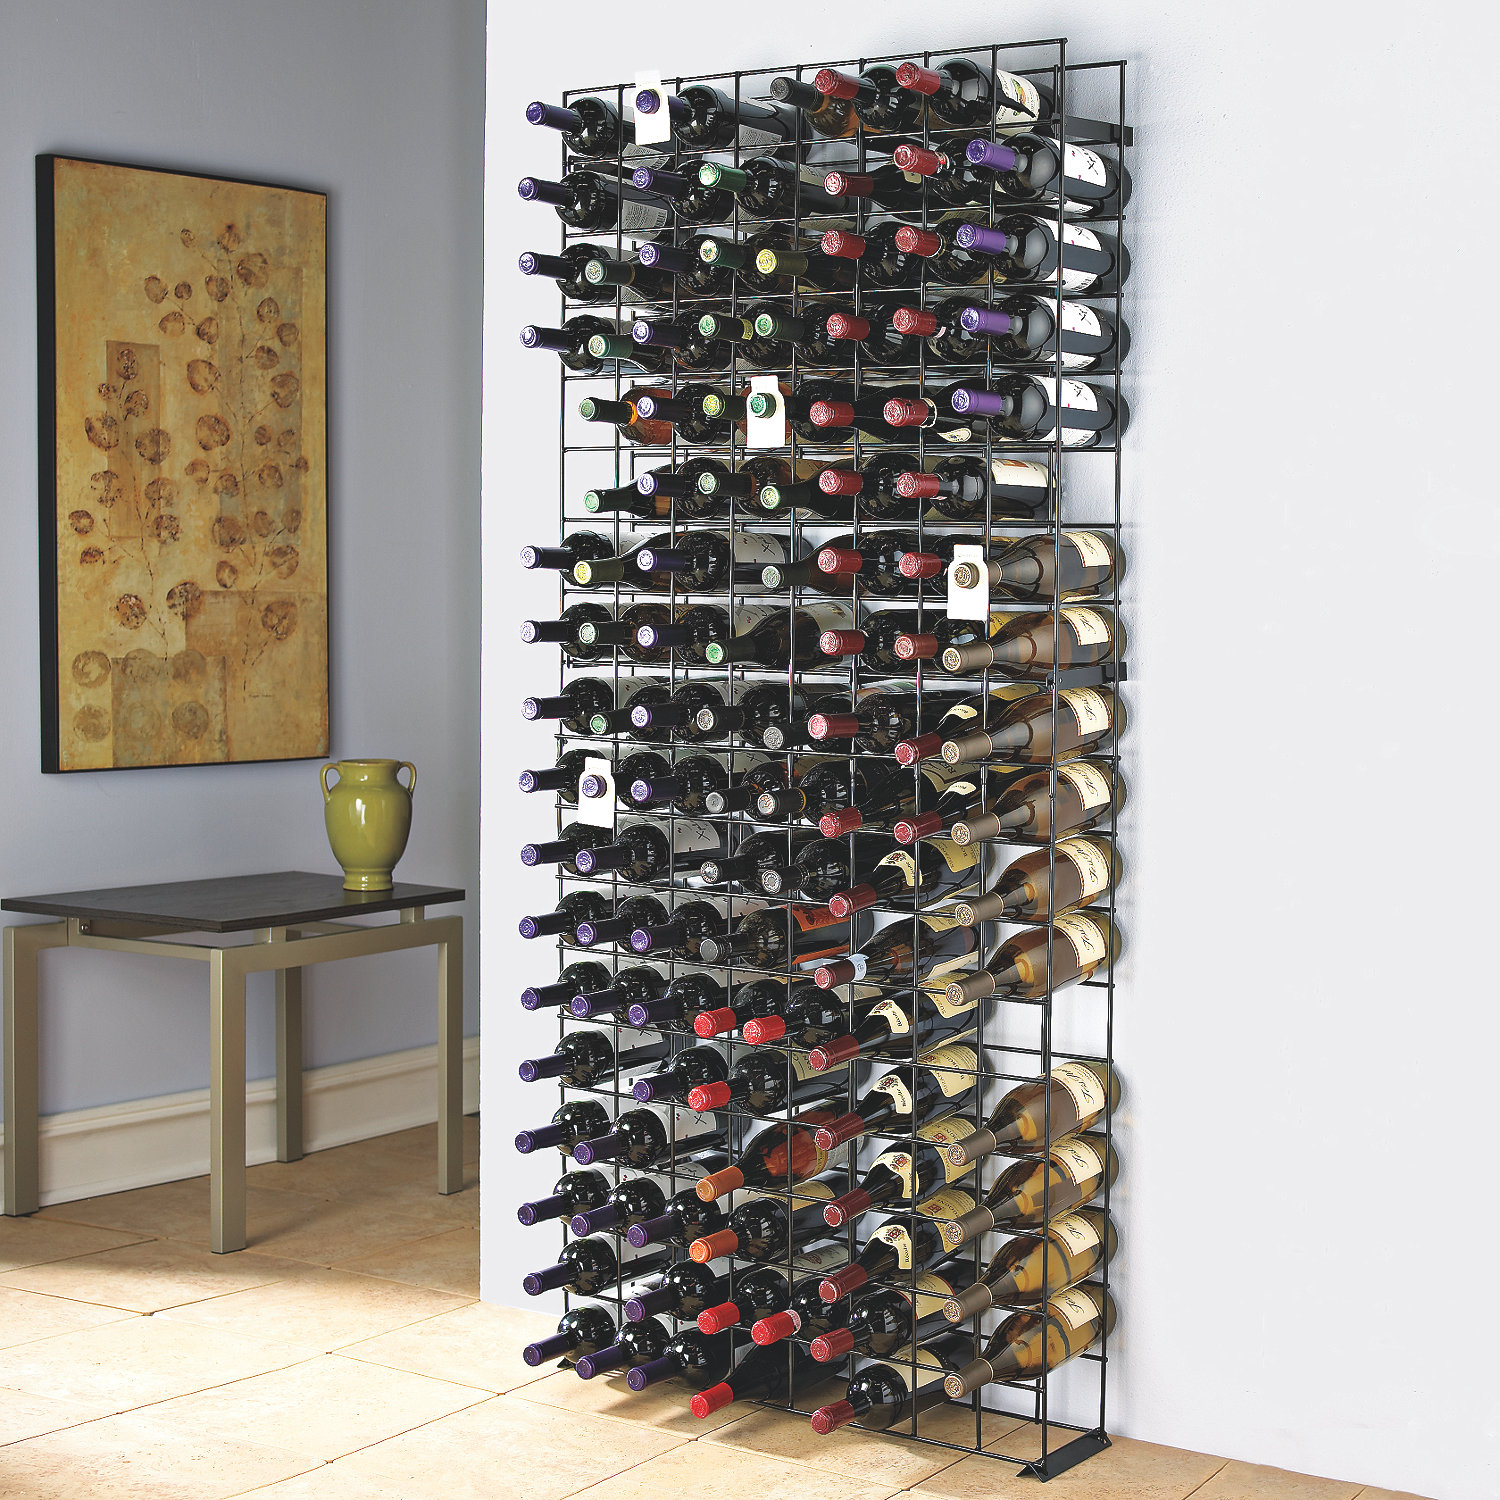 Uncategorized Floor Standing Wine Racks 144 bottle black tie grid wine enthusiast preparing zoom